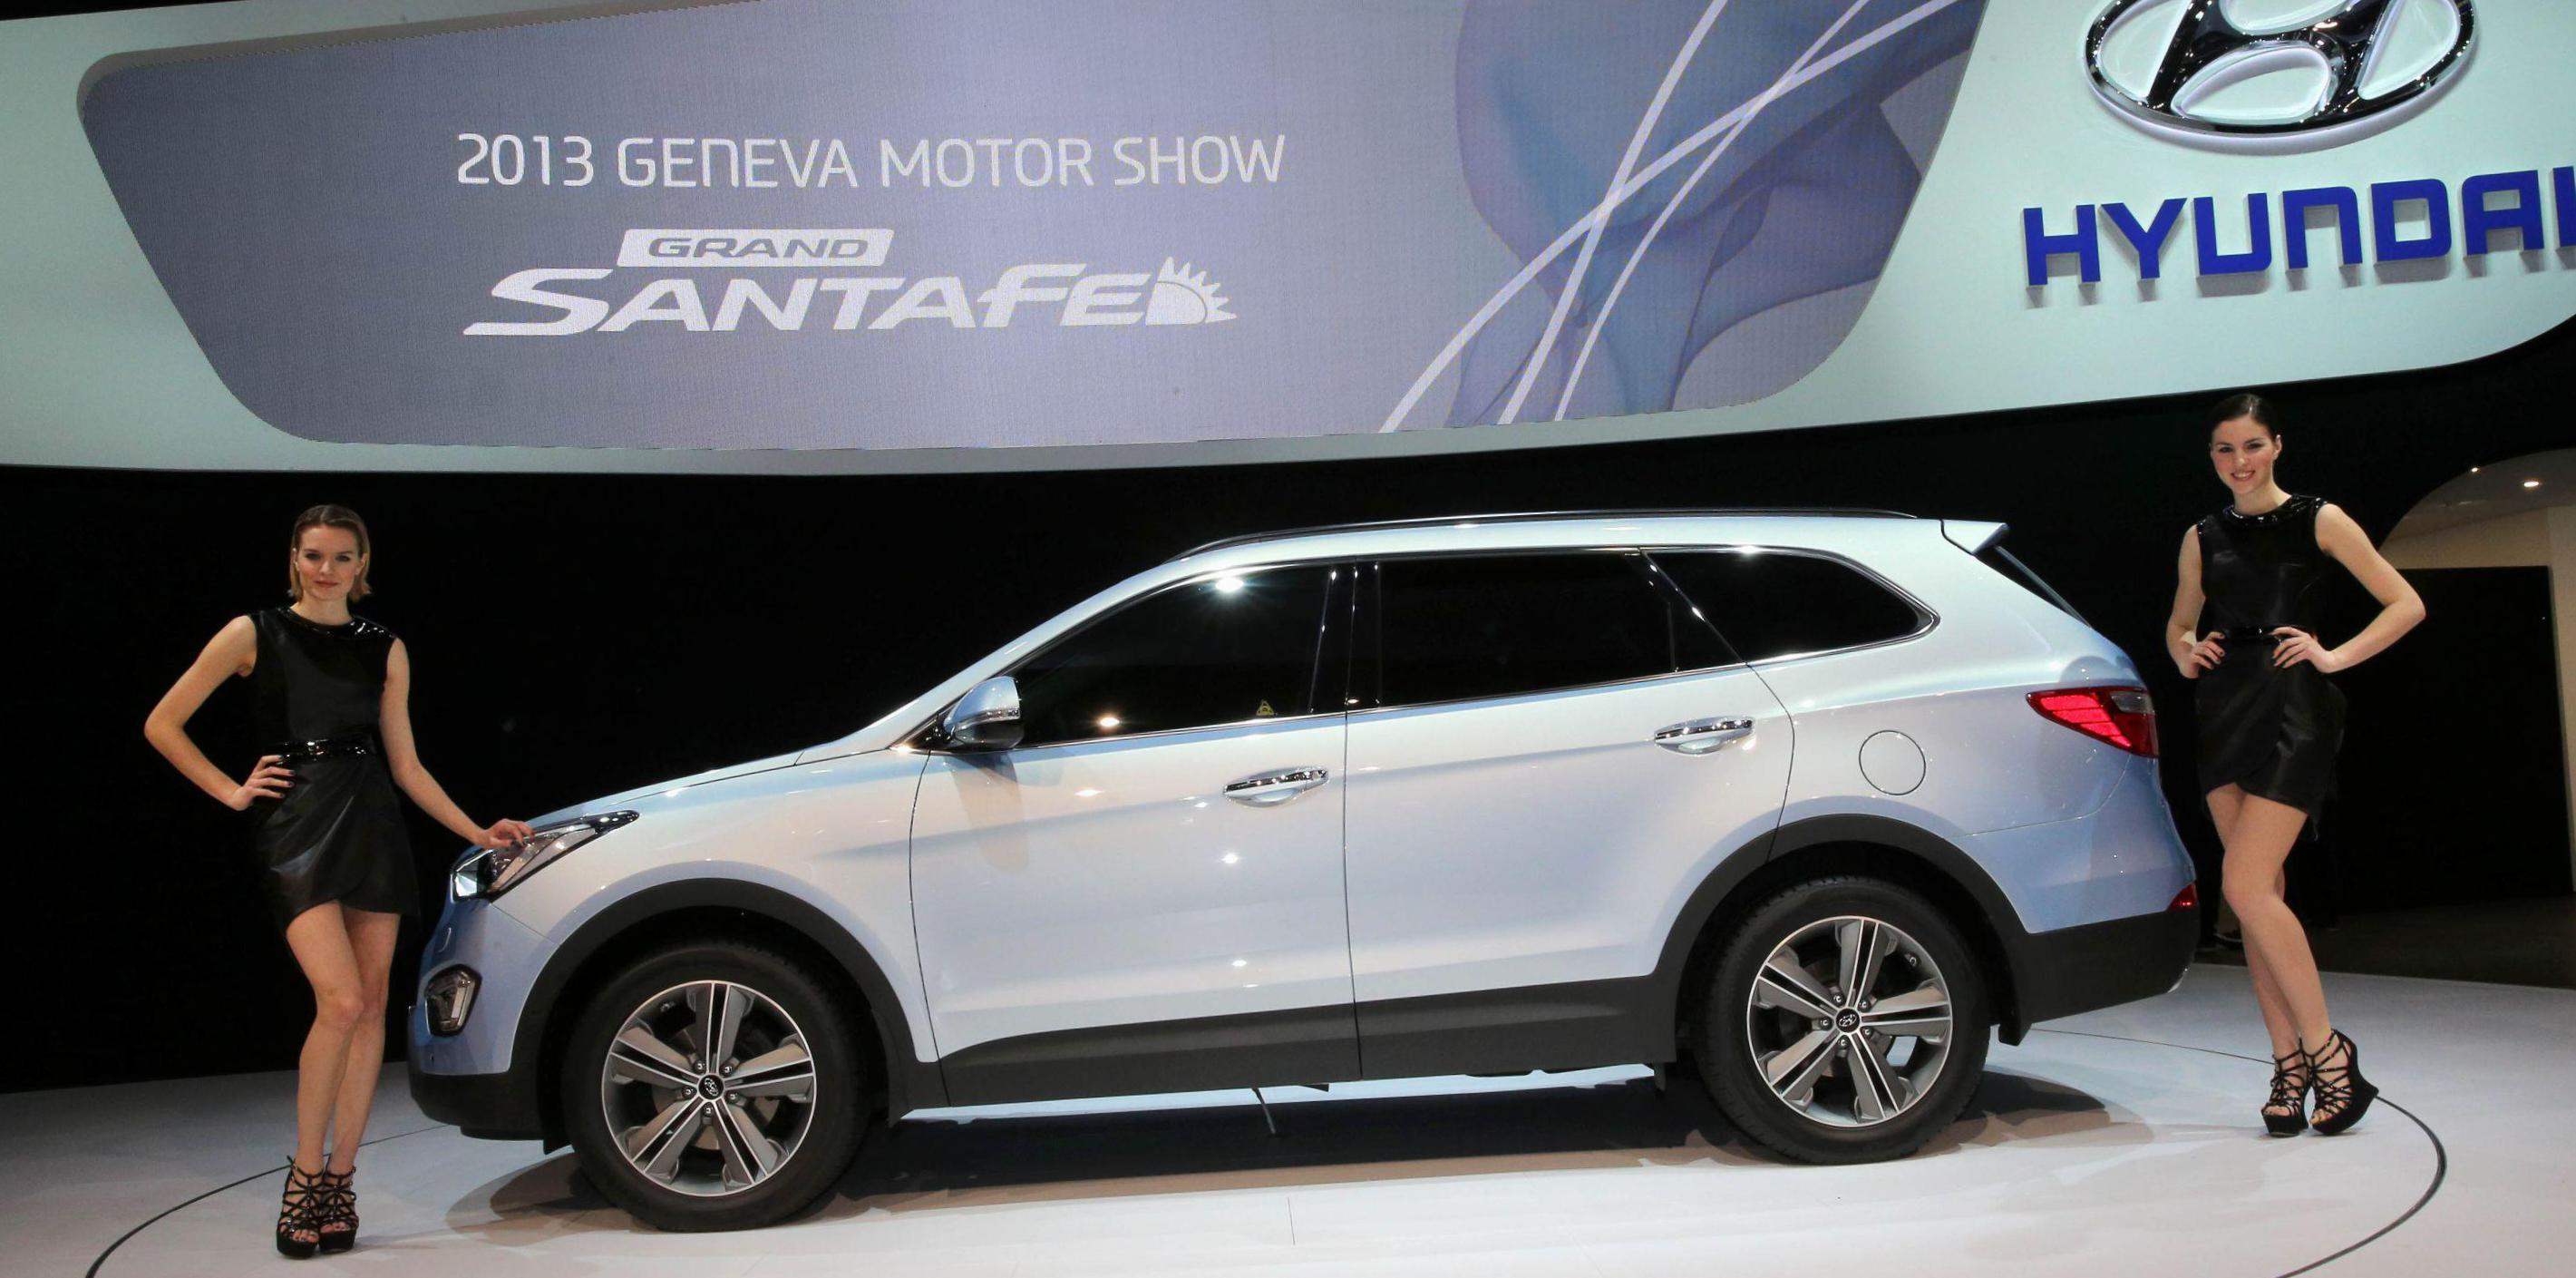 Grand Santa Fe Hyundai approved sedan